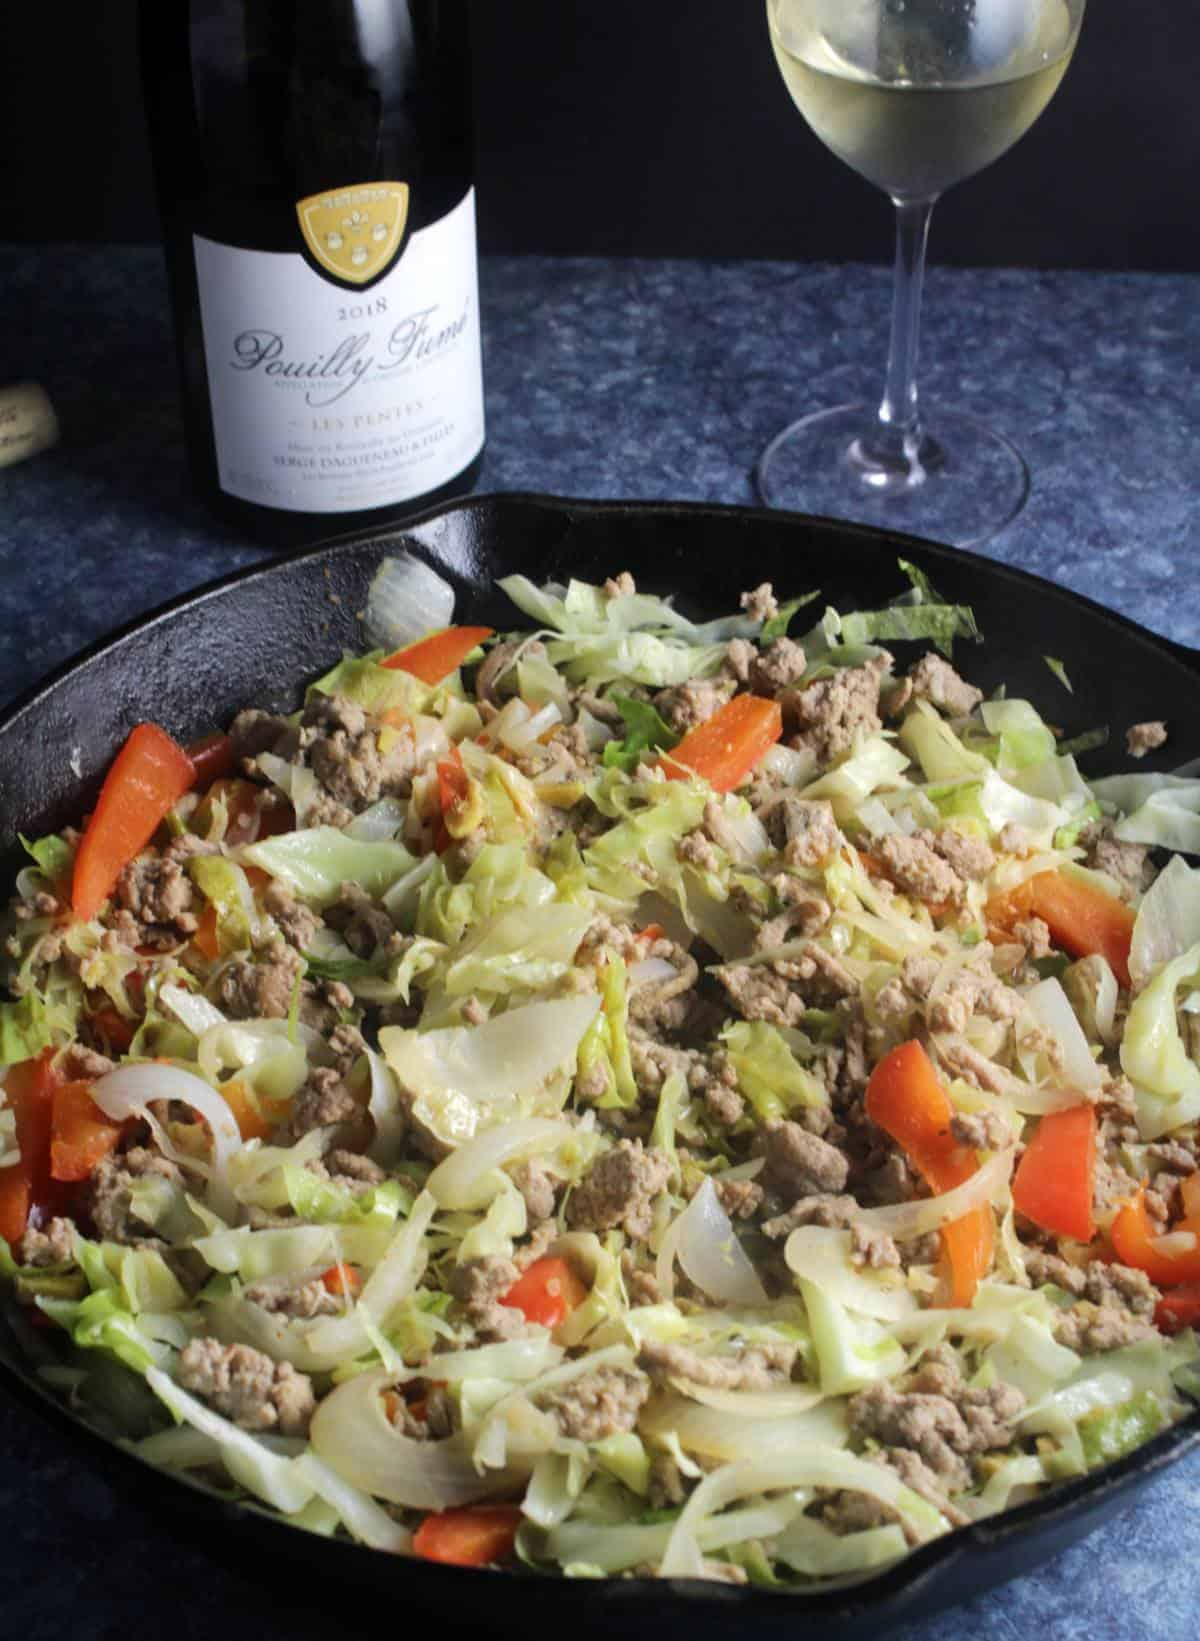 turkey and cabbage in skillet with bottle of wine.